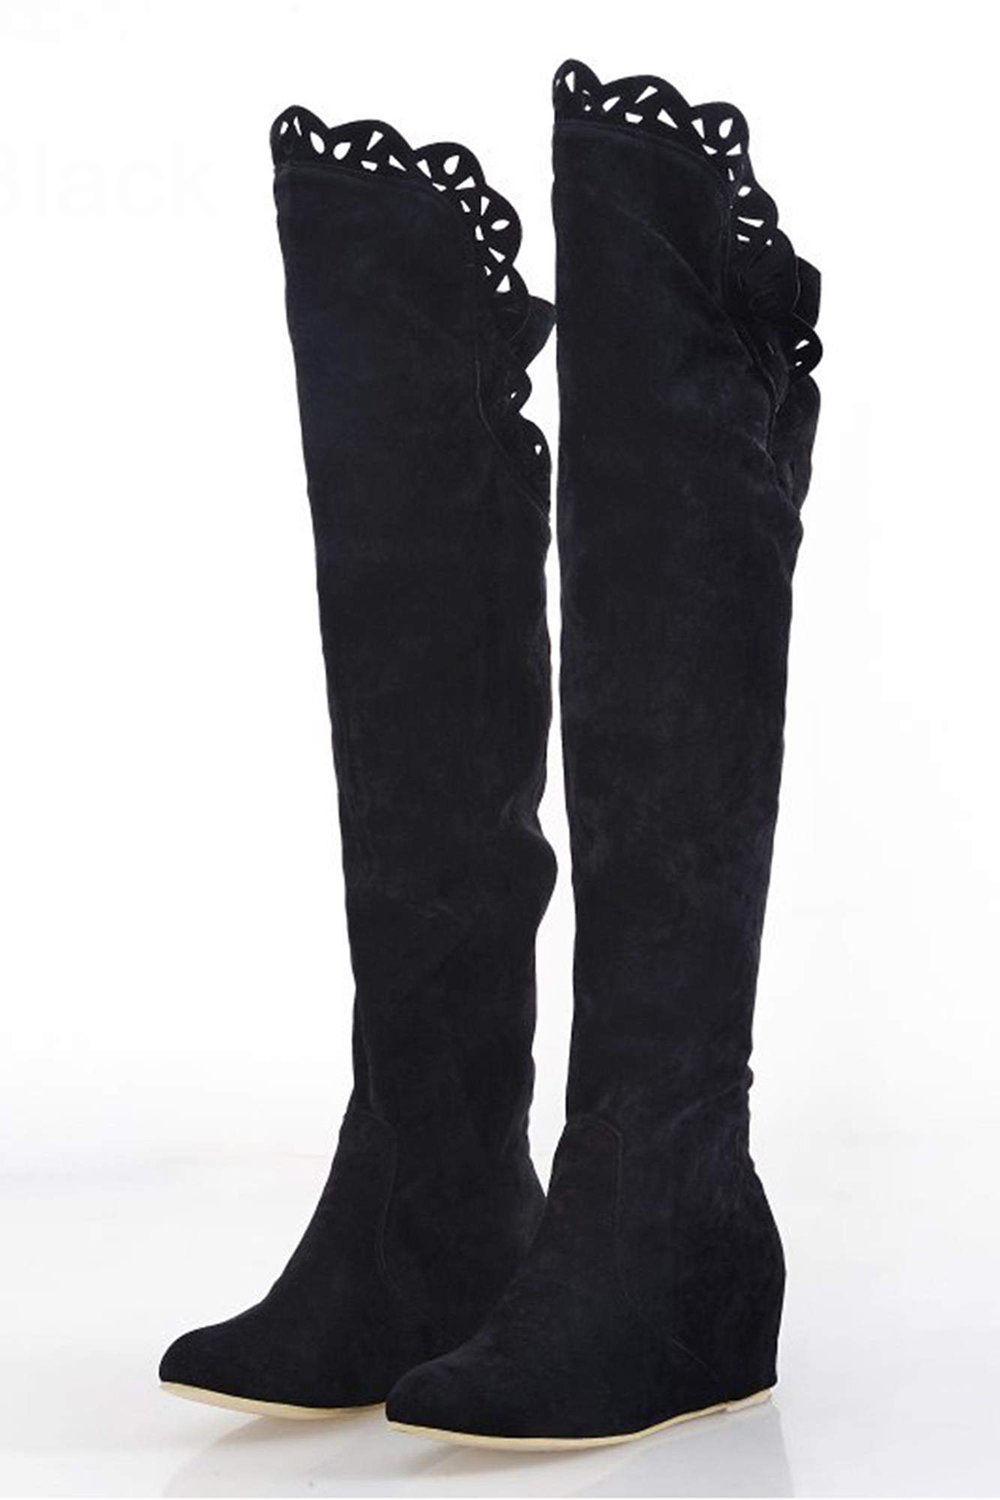 Women Stretch Faux Suede Slim Thigh lace High Boots Sexy Over the Knee Boots High Heels women Shoe 35-39 nayiduyun new fashion thigh high boots women faux suede point toe over knee boots stretchy slim leg high heels pumps plus size